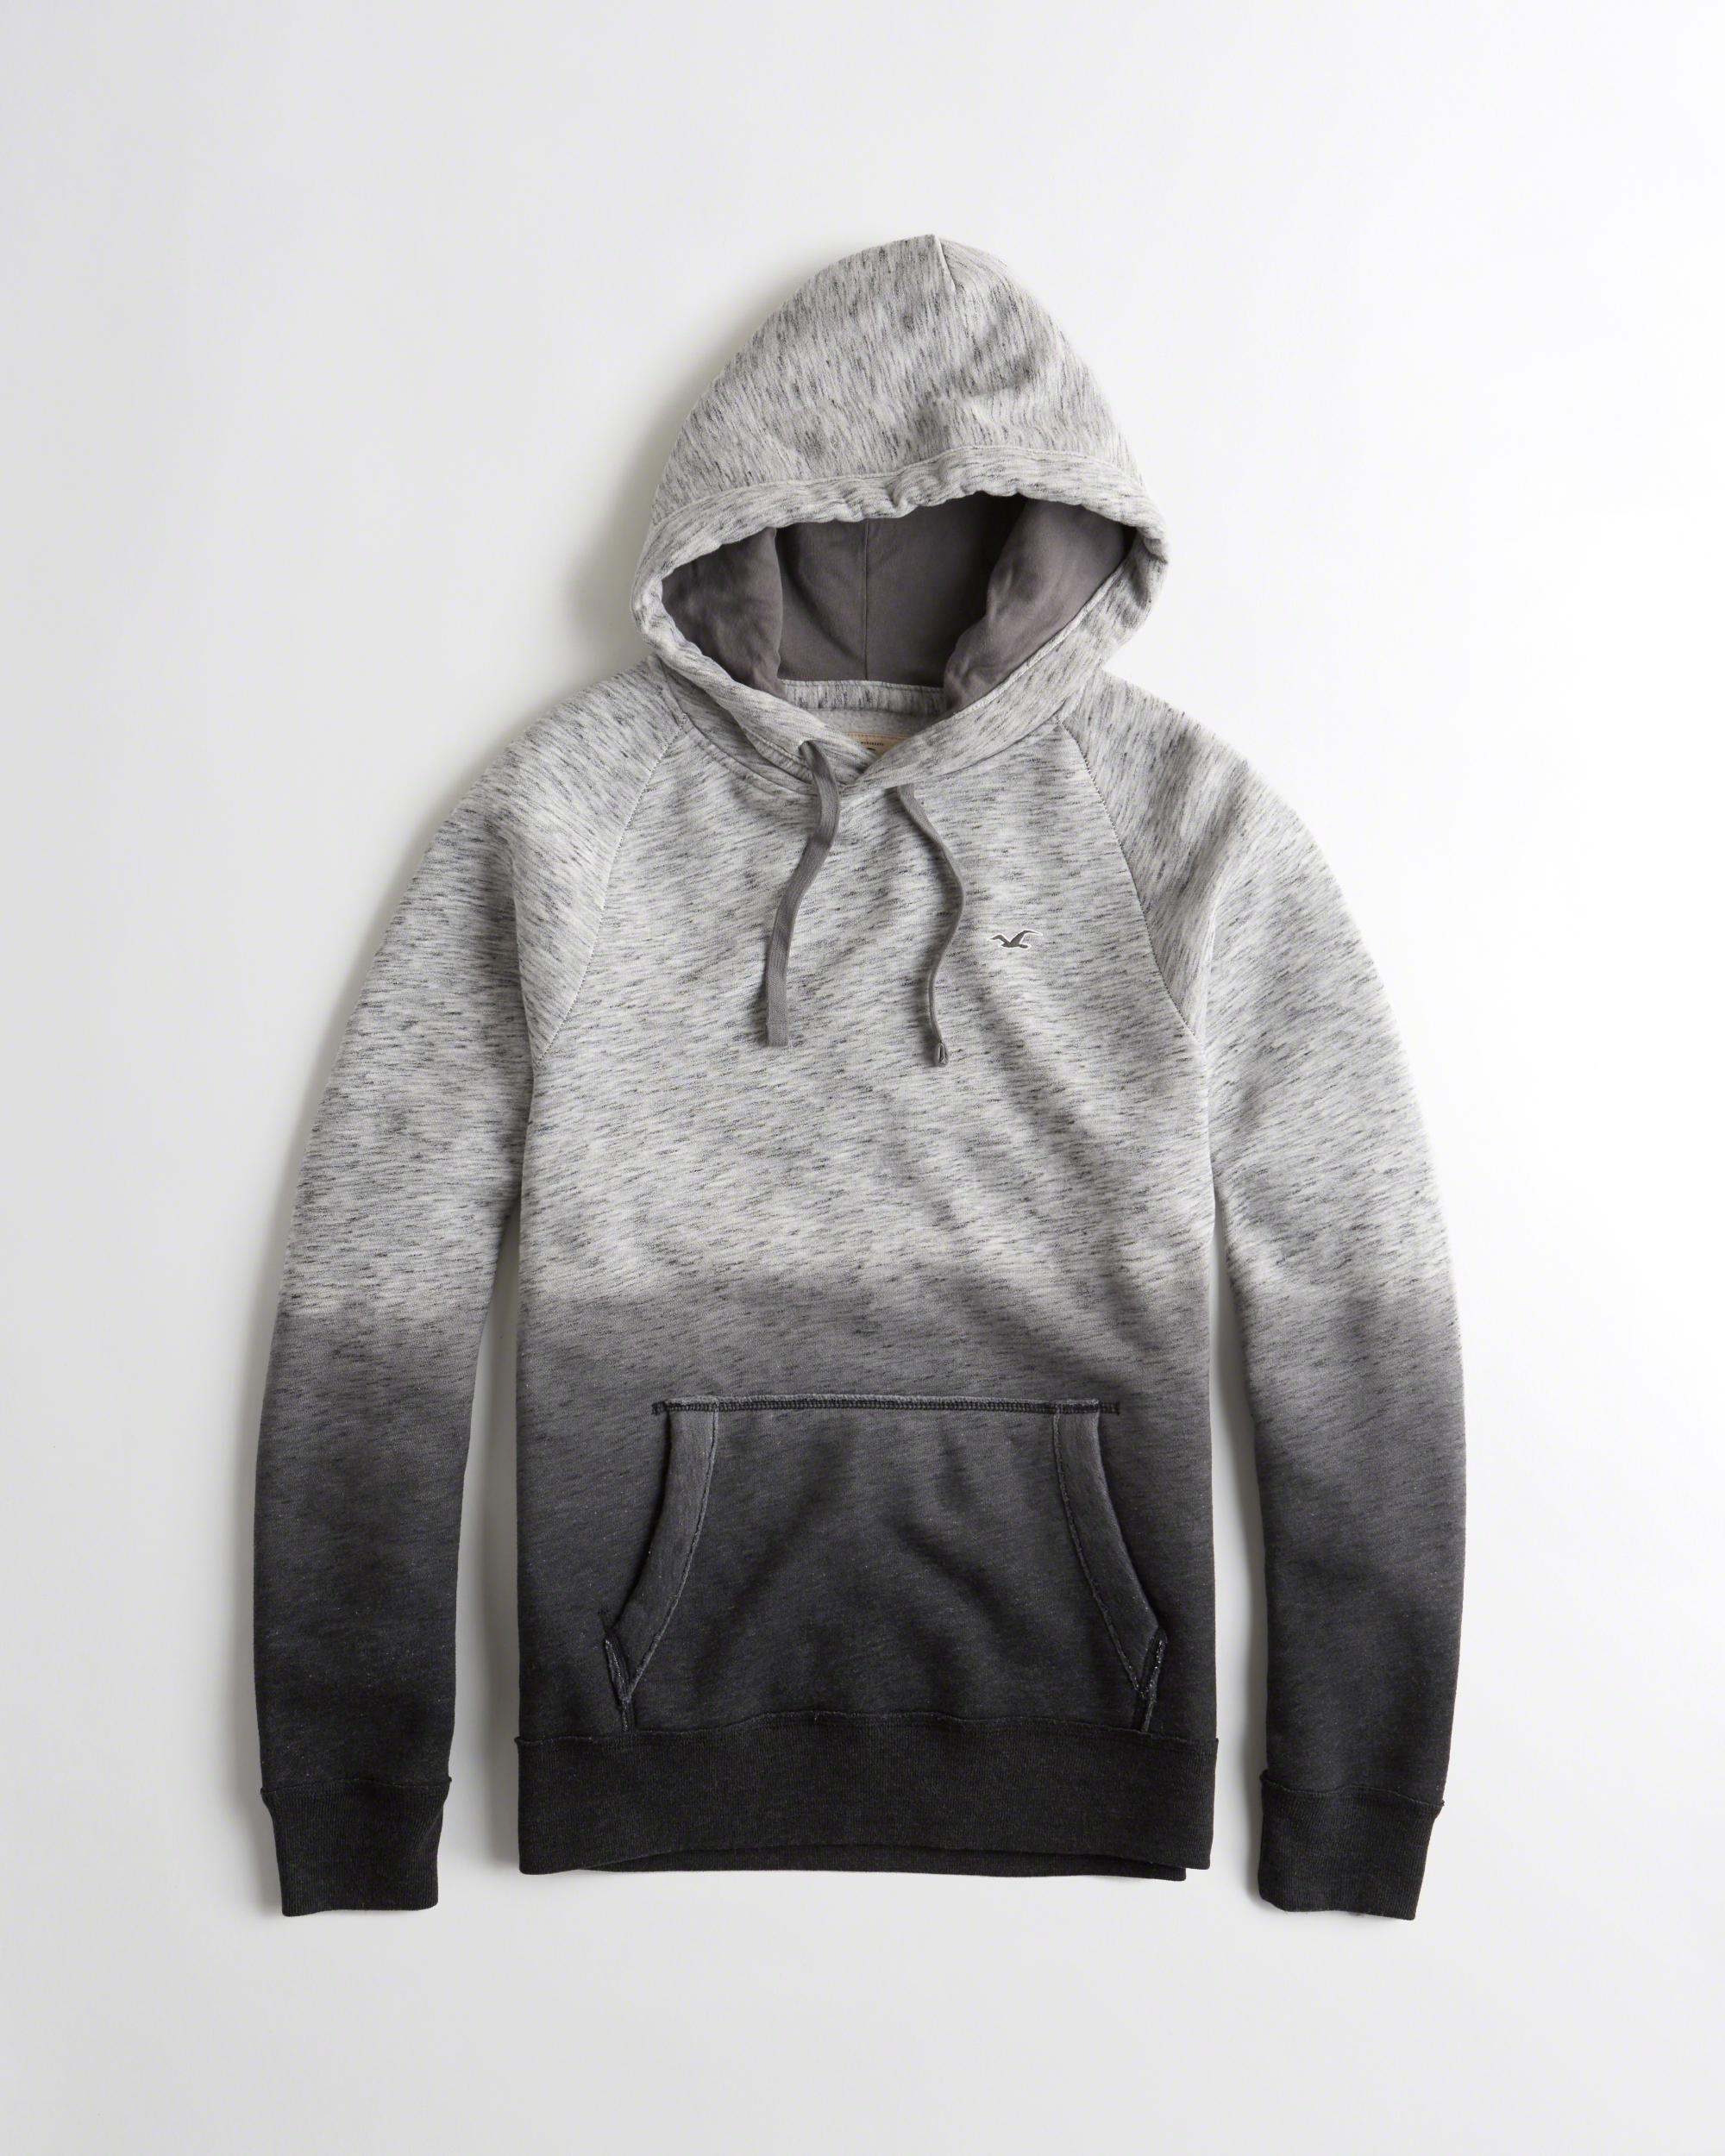 Hollister Sweaters Hollister Hoodies Hollister Shirts Hollister Jacket Hollister Pants Hollister Jeans: Hollister Feel Good Fleece Hoodie In Grey For Men